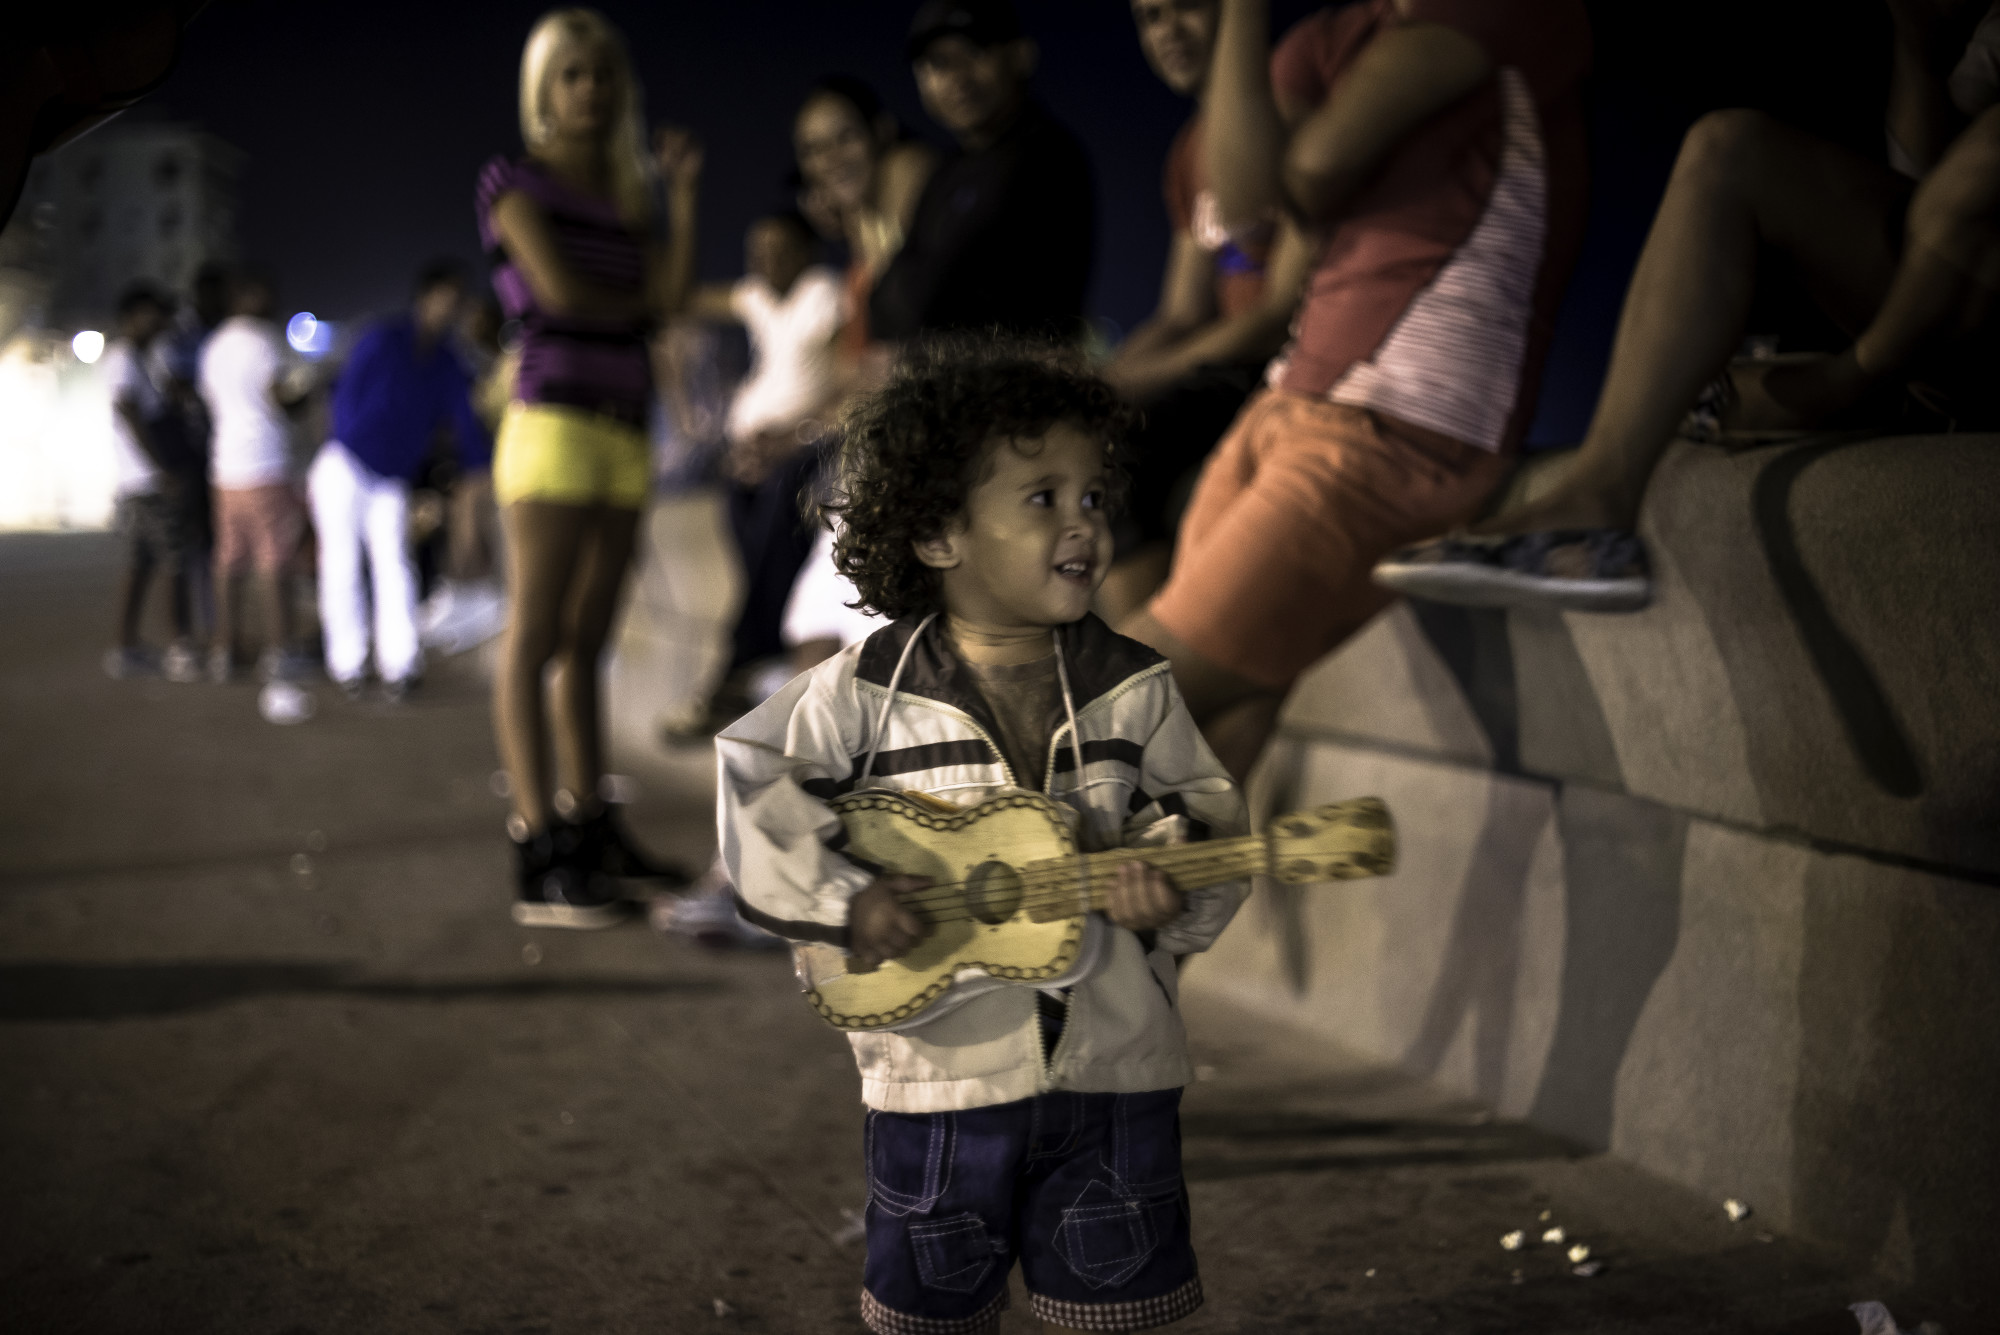 A small boy plays along to his parents' boombox on the Malecón.